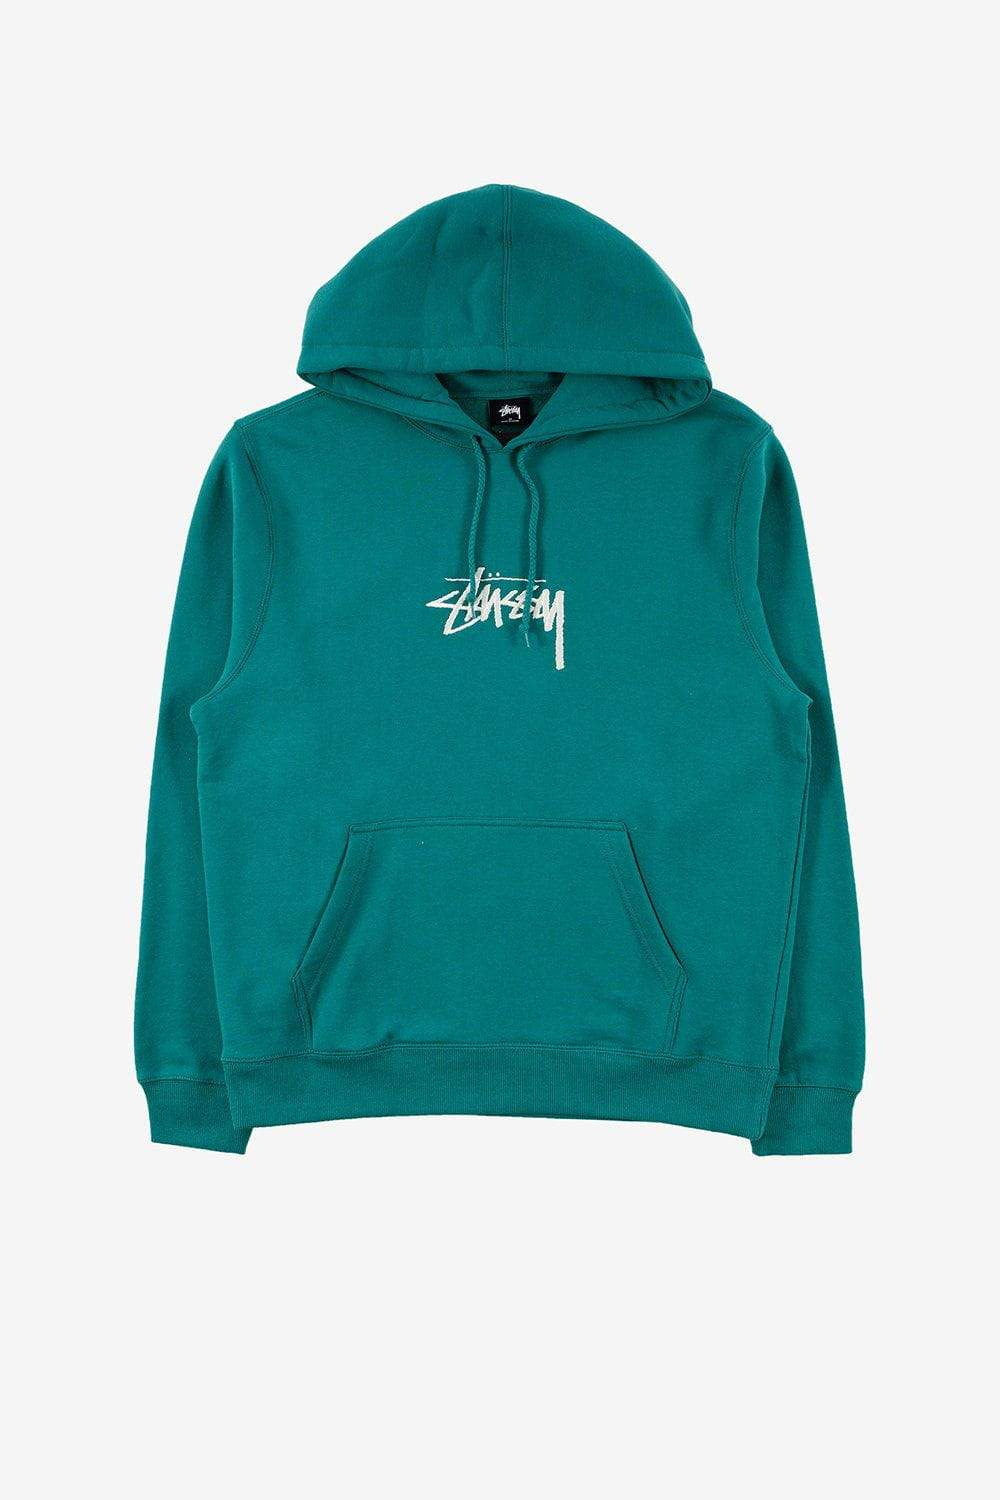 Stussy Apparel Stock Logo Applique Hoodie